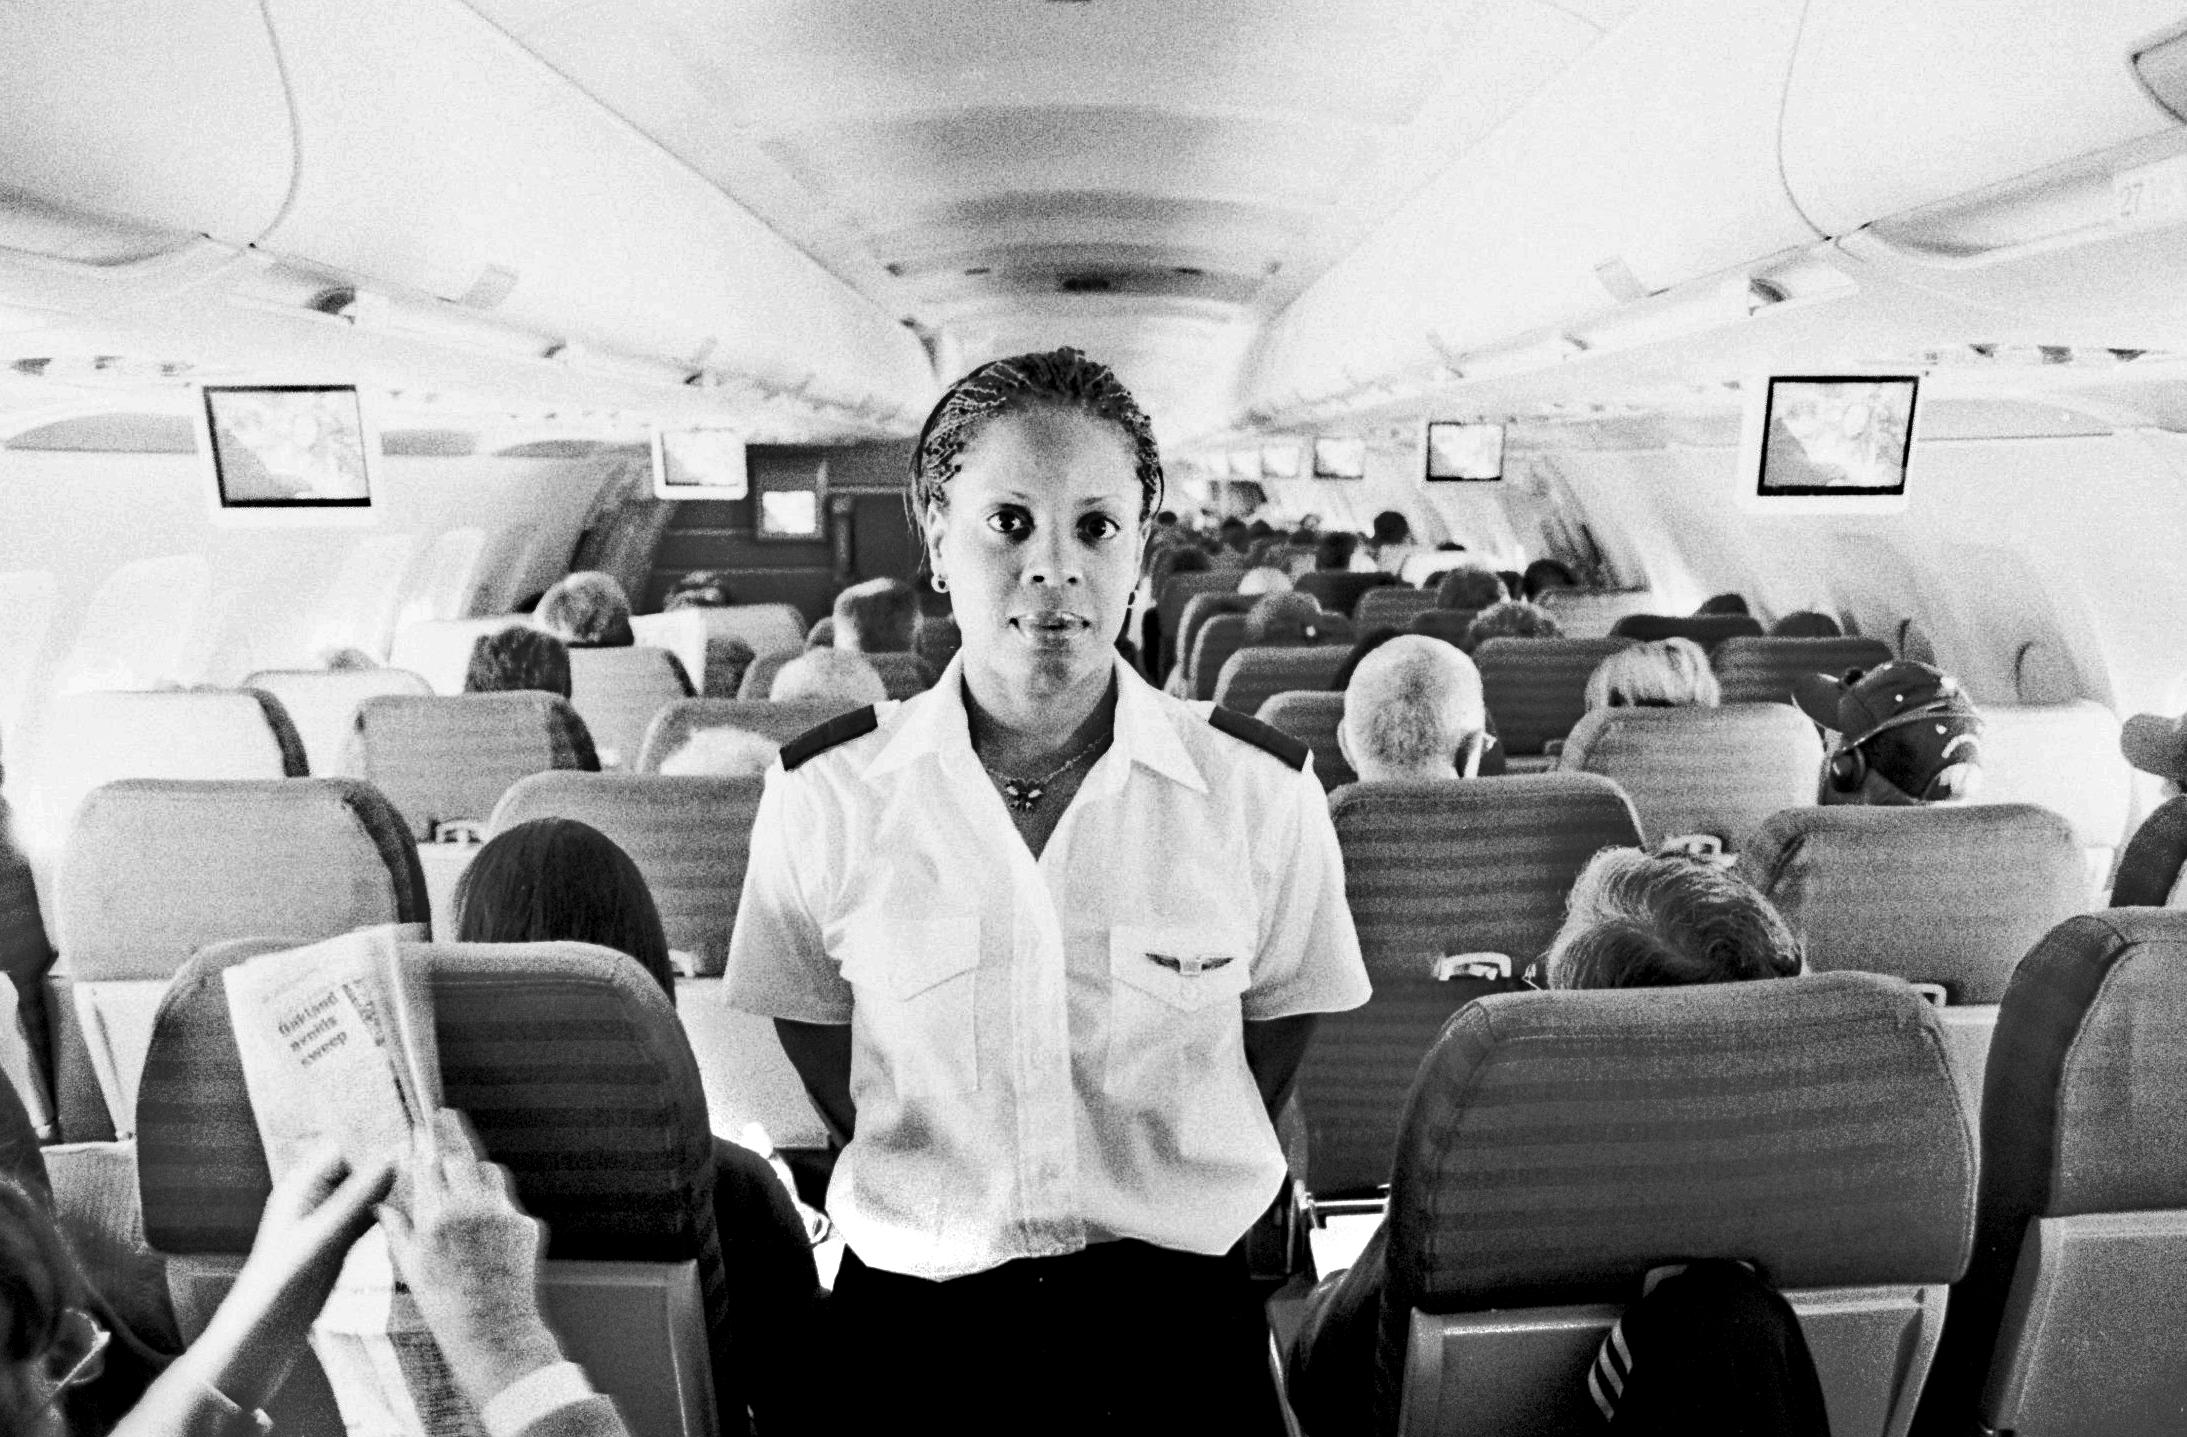 Flight Attendant, SF to Philly